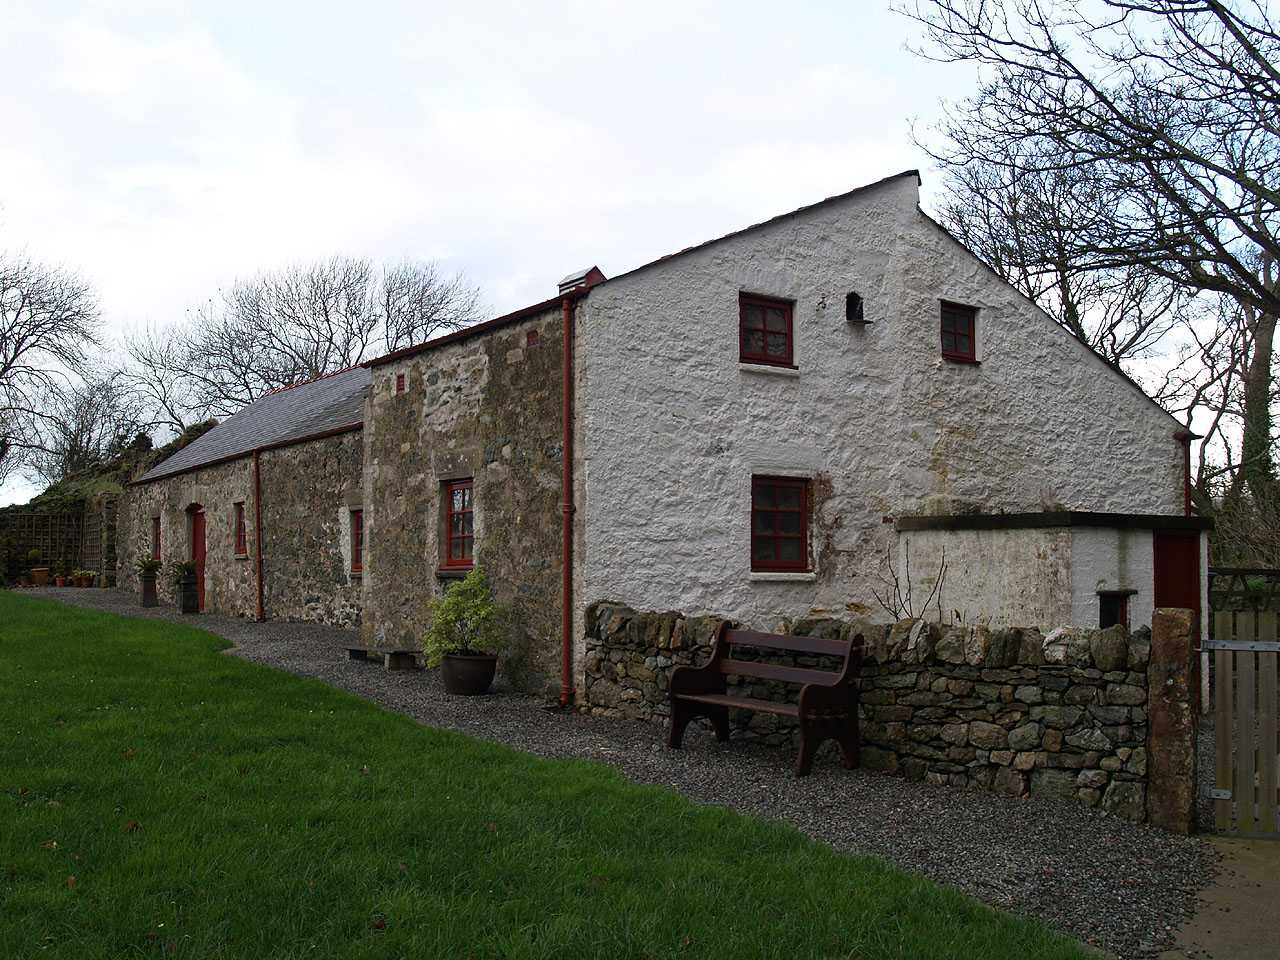 Anglesey, Llangefni Water Mill - Outbuildings